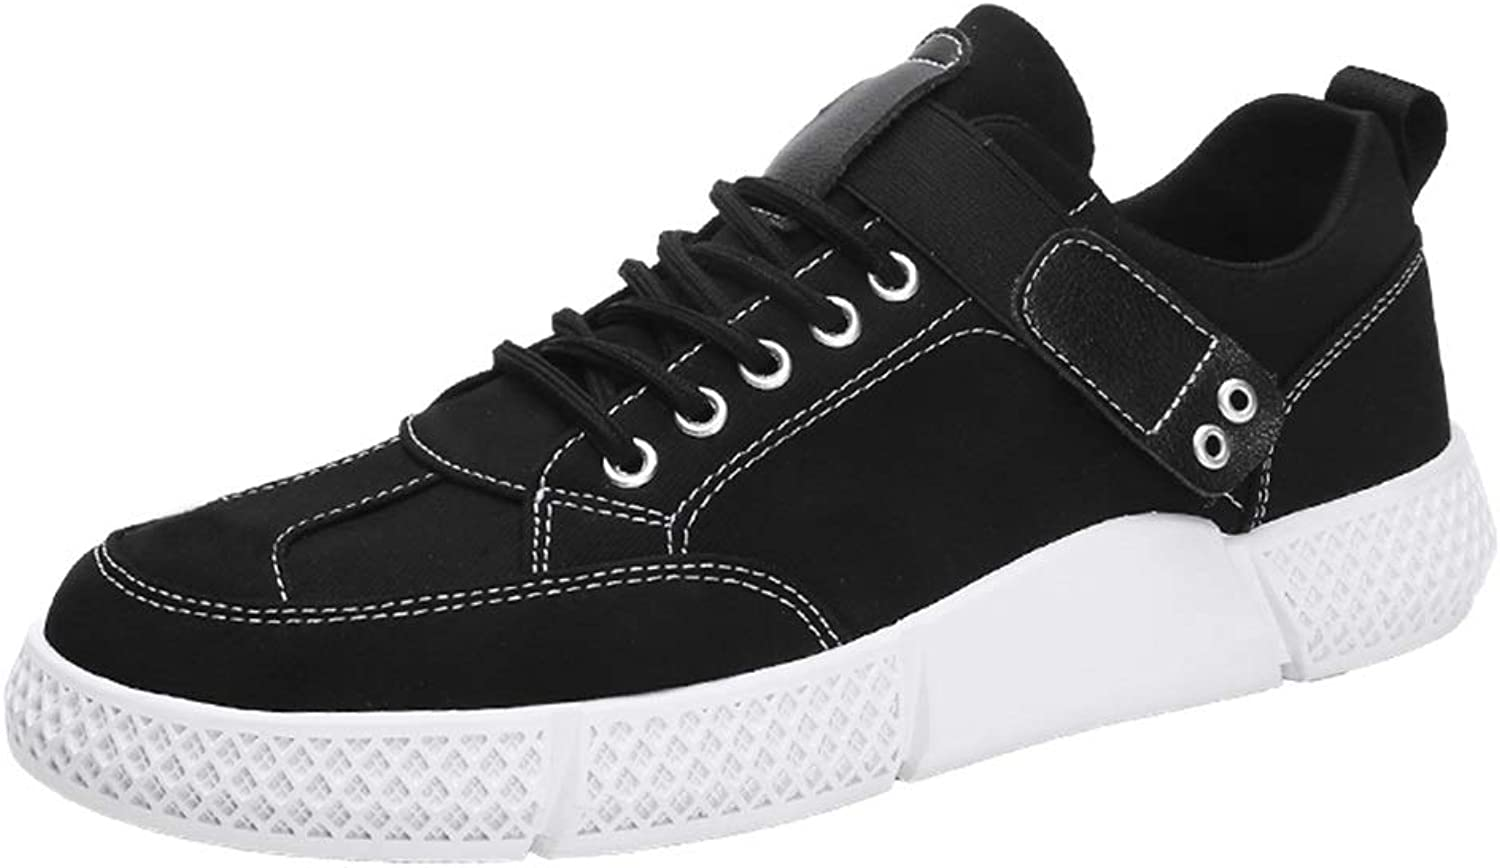 Easy Go Shopping Sneaker For Men Sports shoes Lace Up Cloth Round Toe Low Top shoes Hook&Loop Strap Cricket shoes (color   Black, Size   8.5 UK)